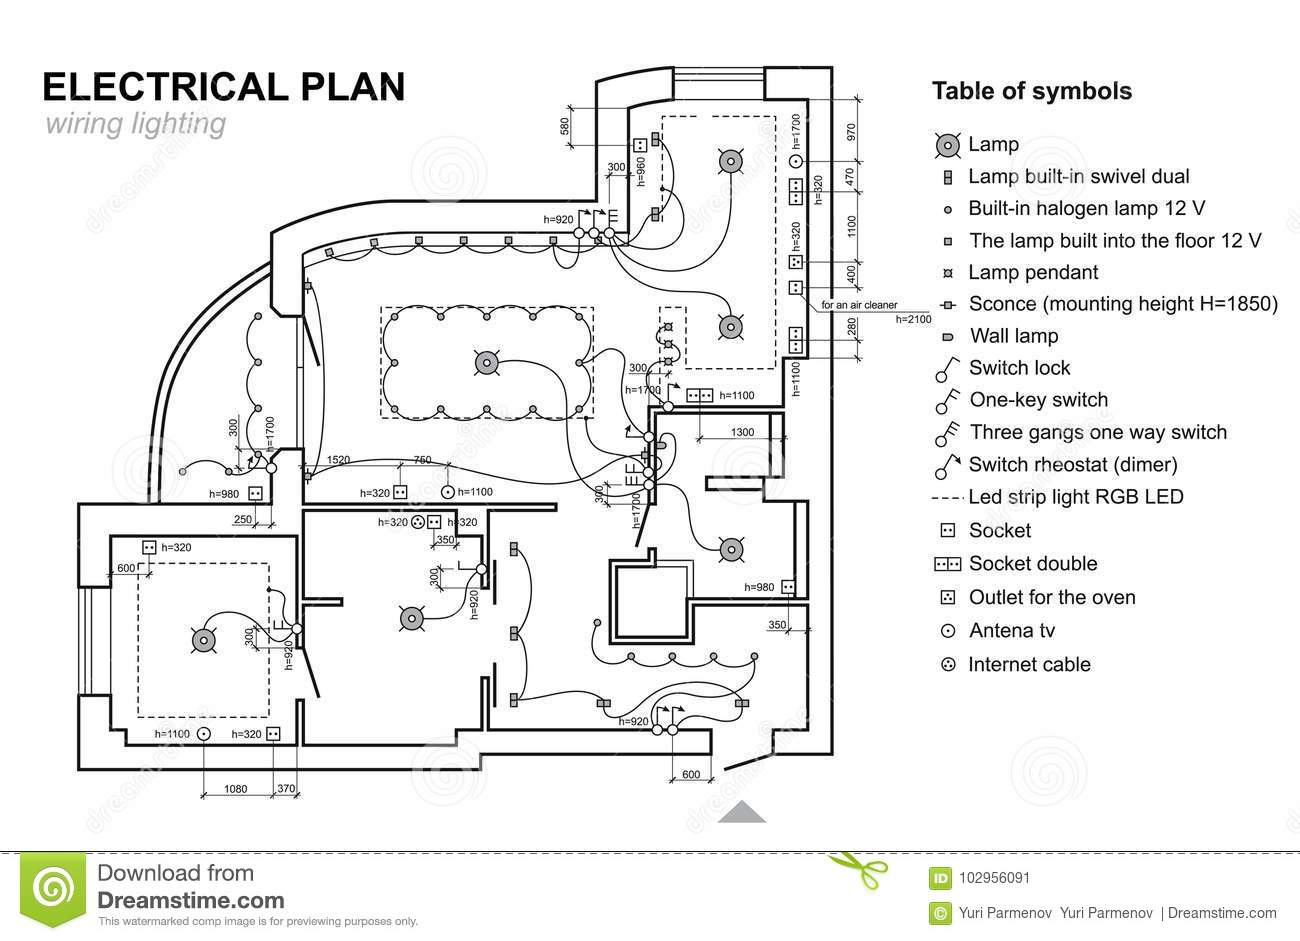 Plan wiring lighting electrical schematic interior set of standard download comp malvernweather Image collections